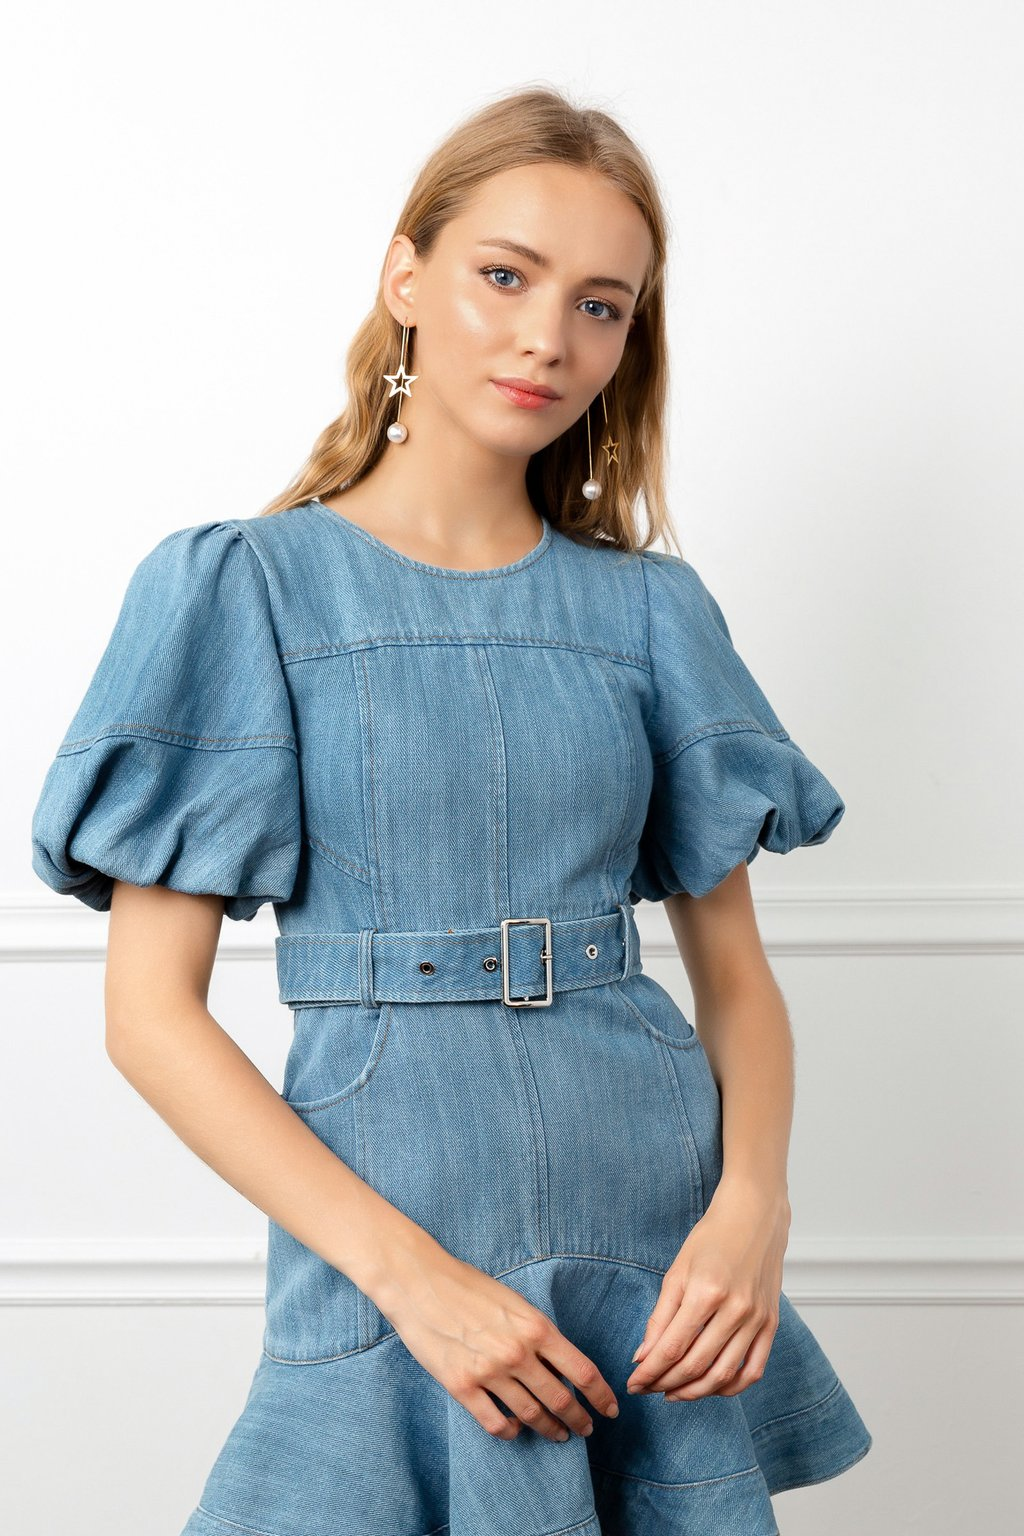 Denim Doll Dress by J.ING La women's fashion